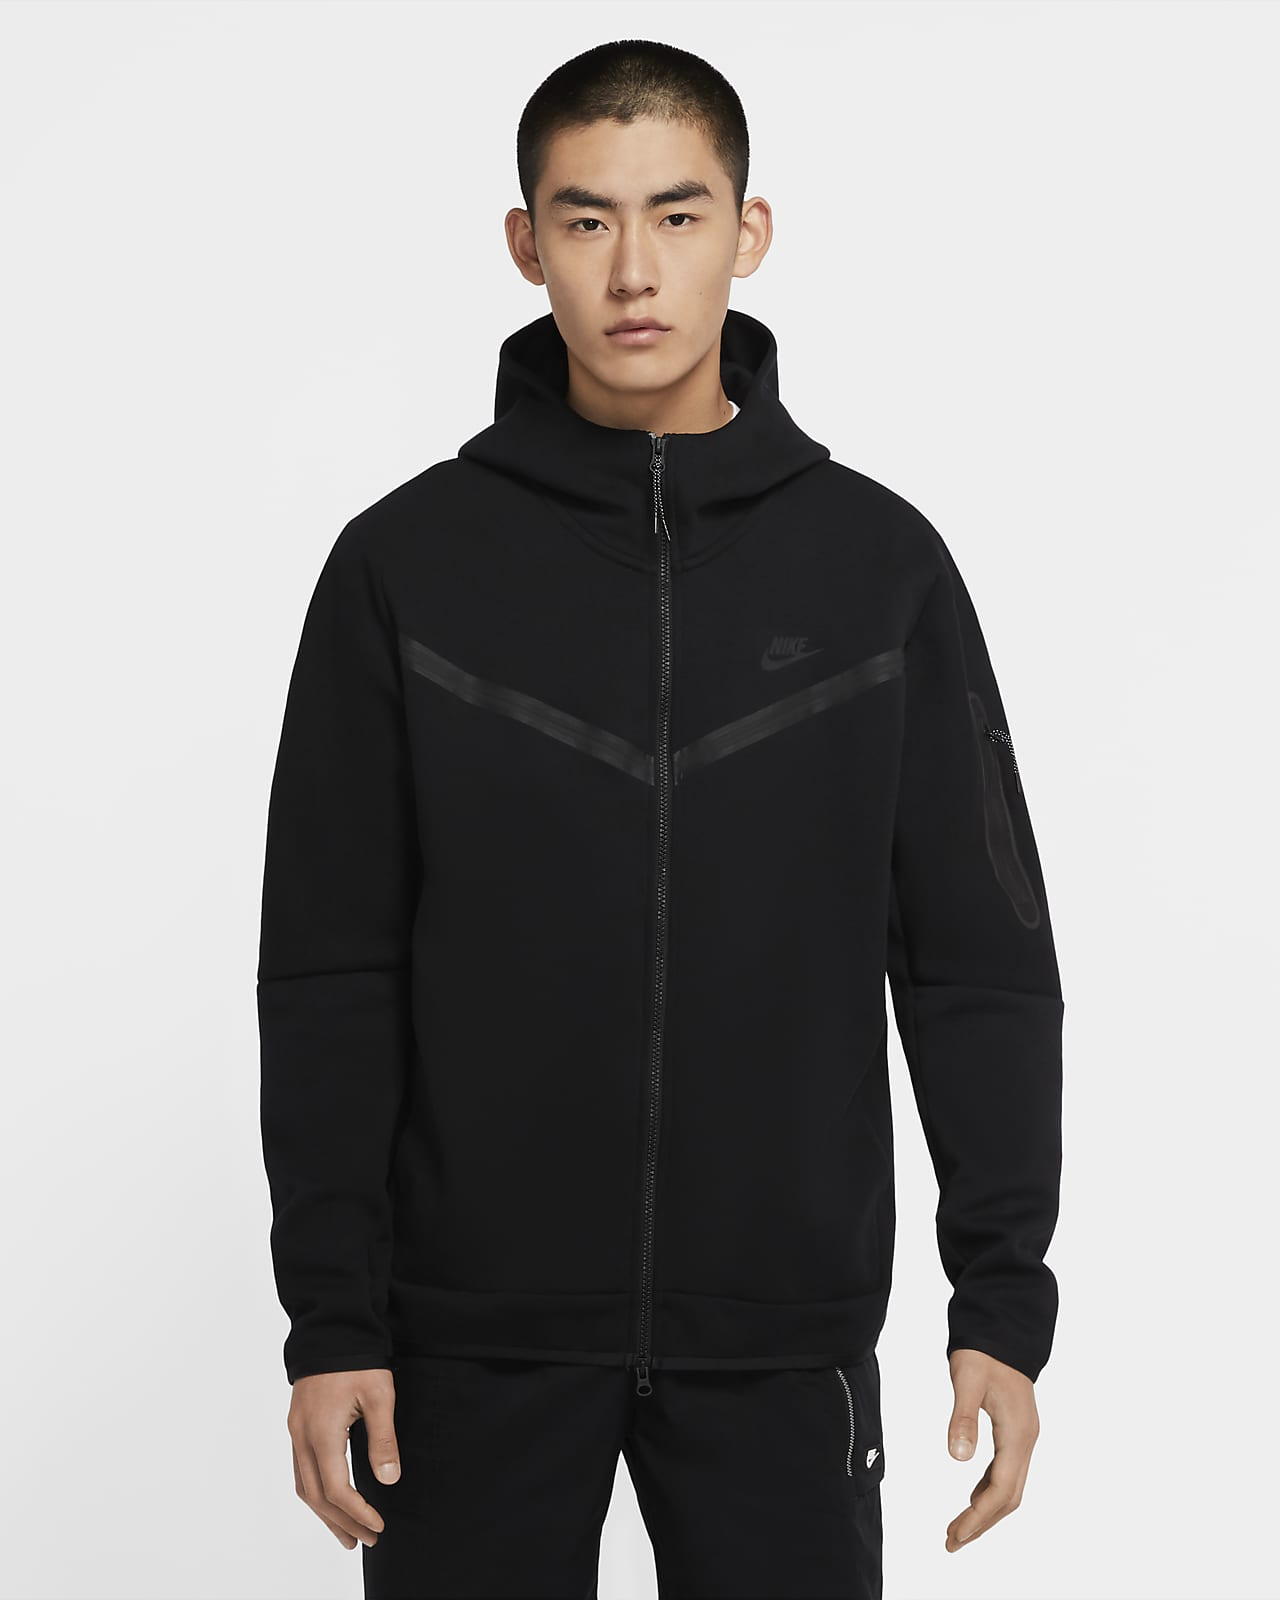 Sweat à capuche à zip Nike Sportswear Tech Fleece pour Homme